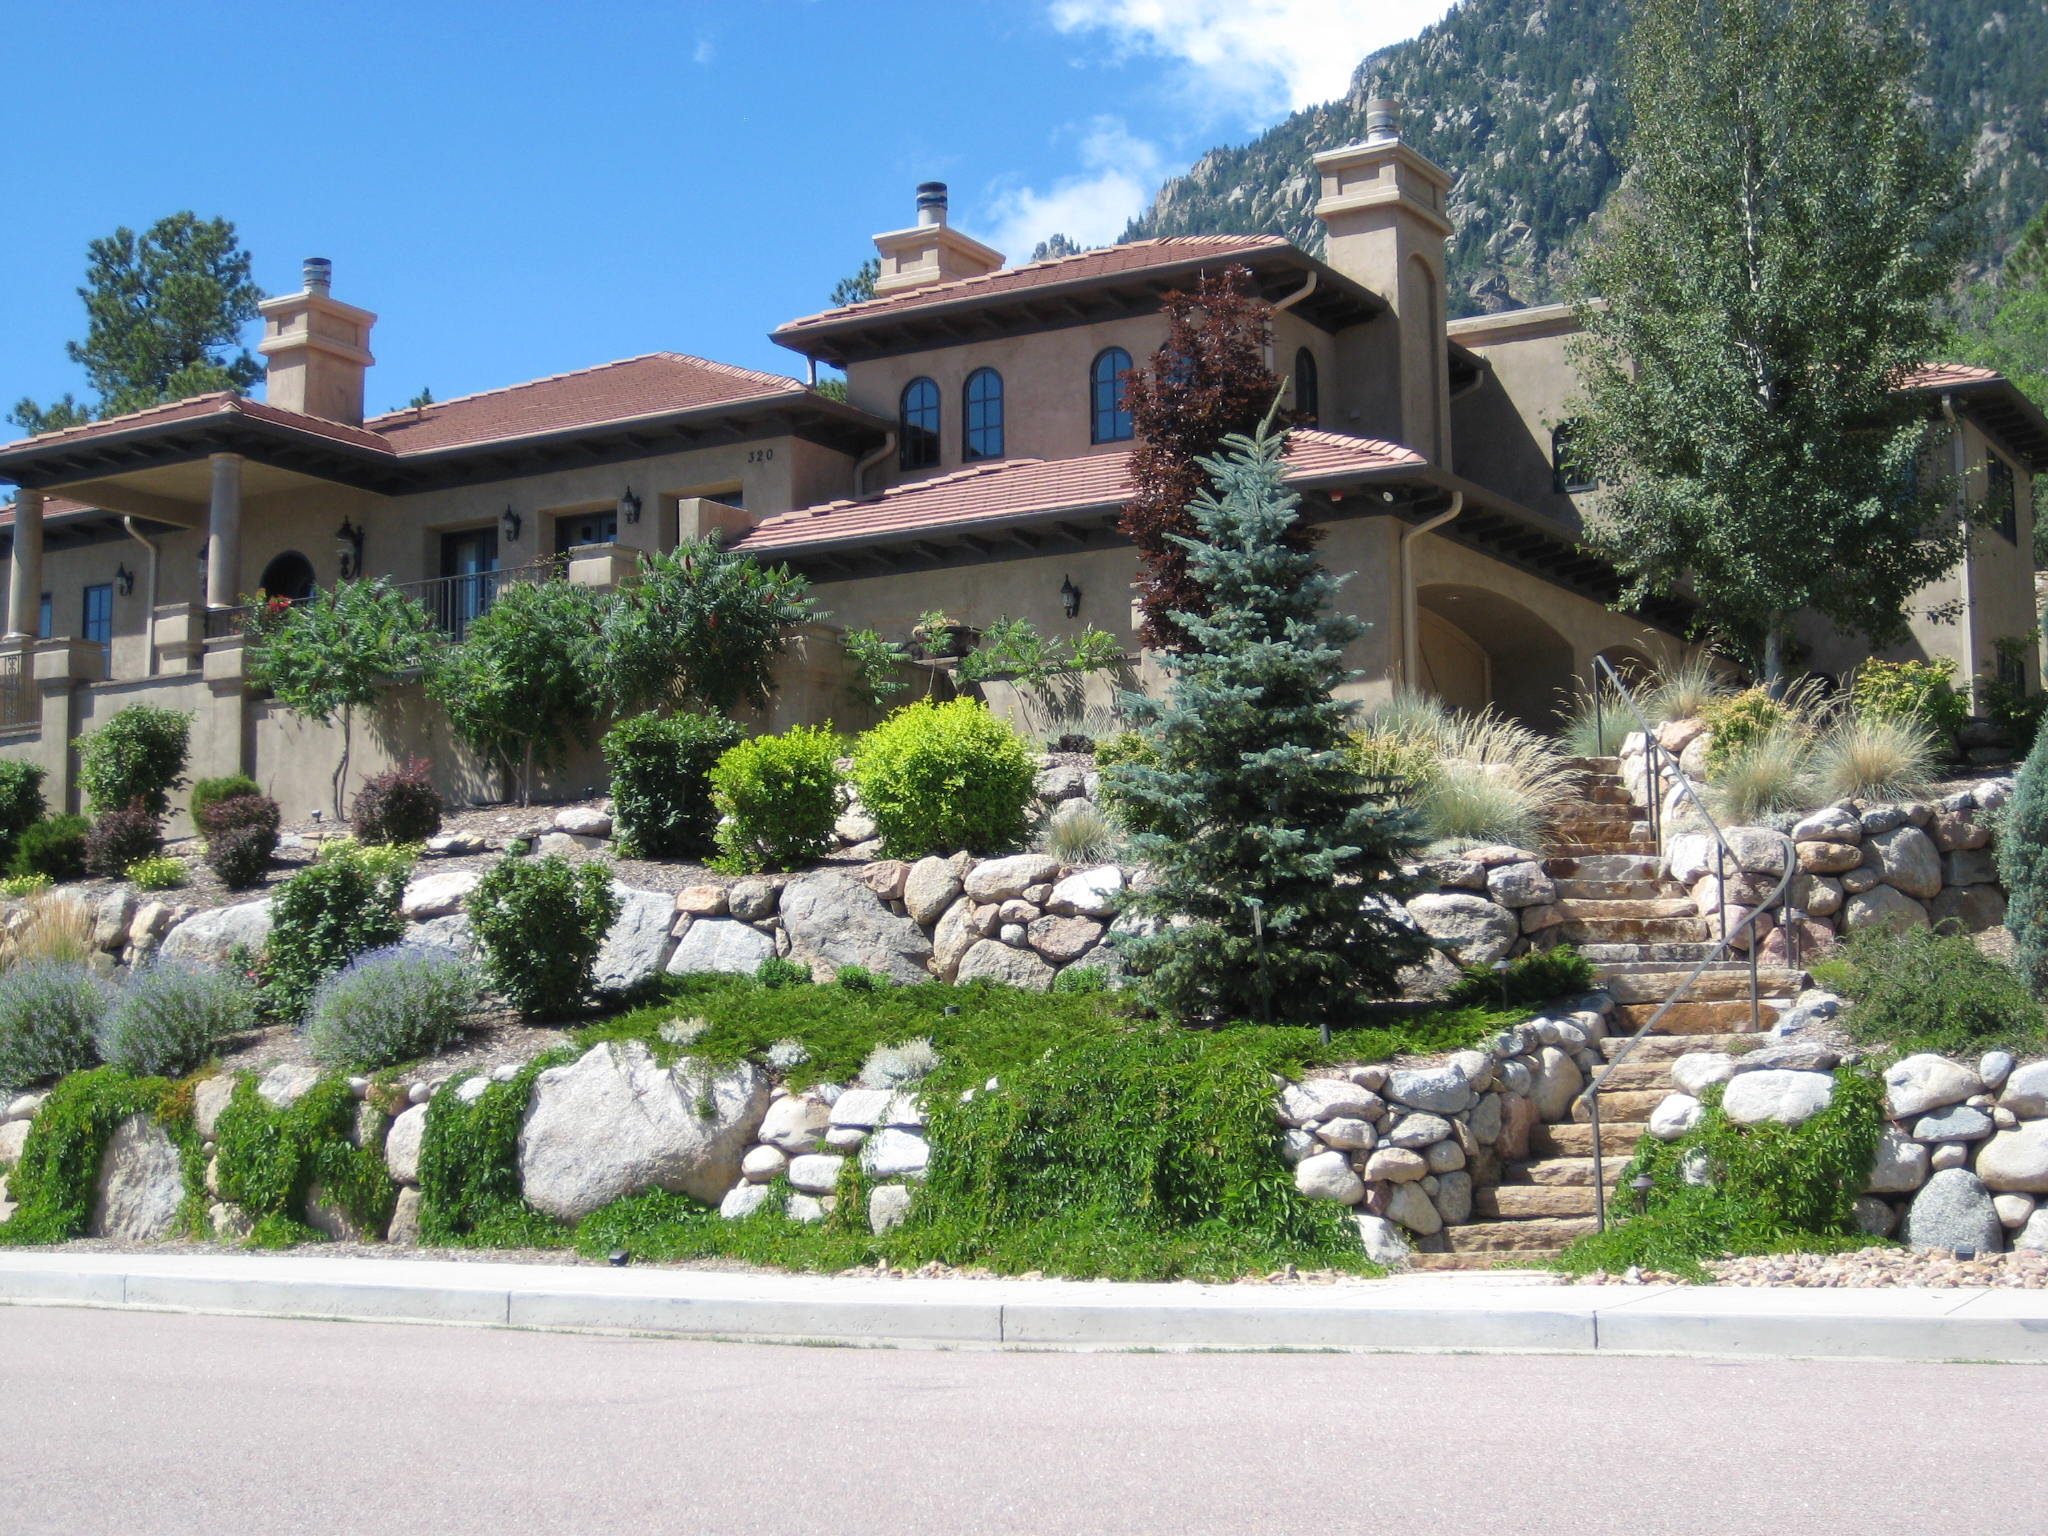 Colorado Springs Landscape Design & Landscape Design Colorado Springs | Fredell Enterprises Inc.